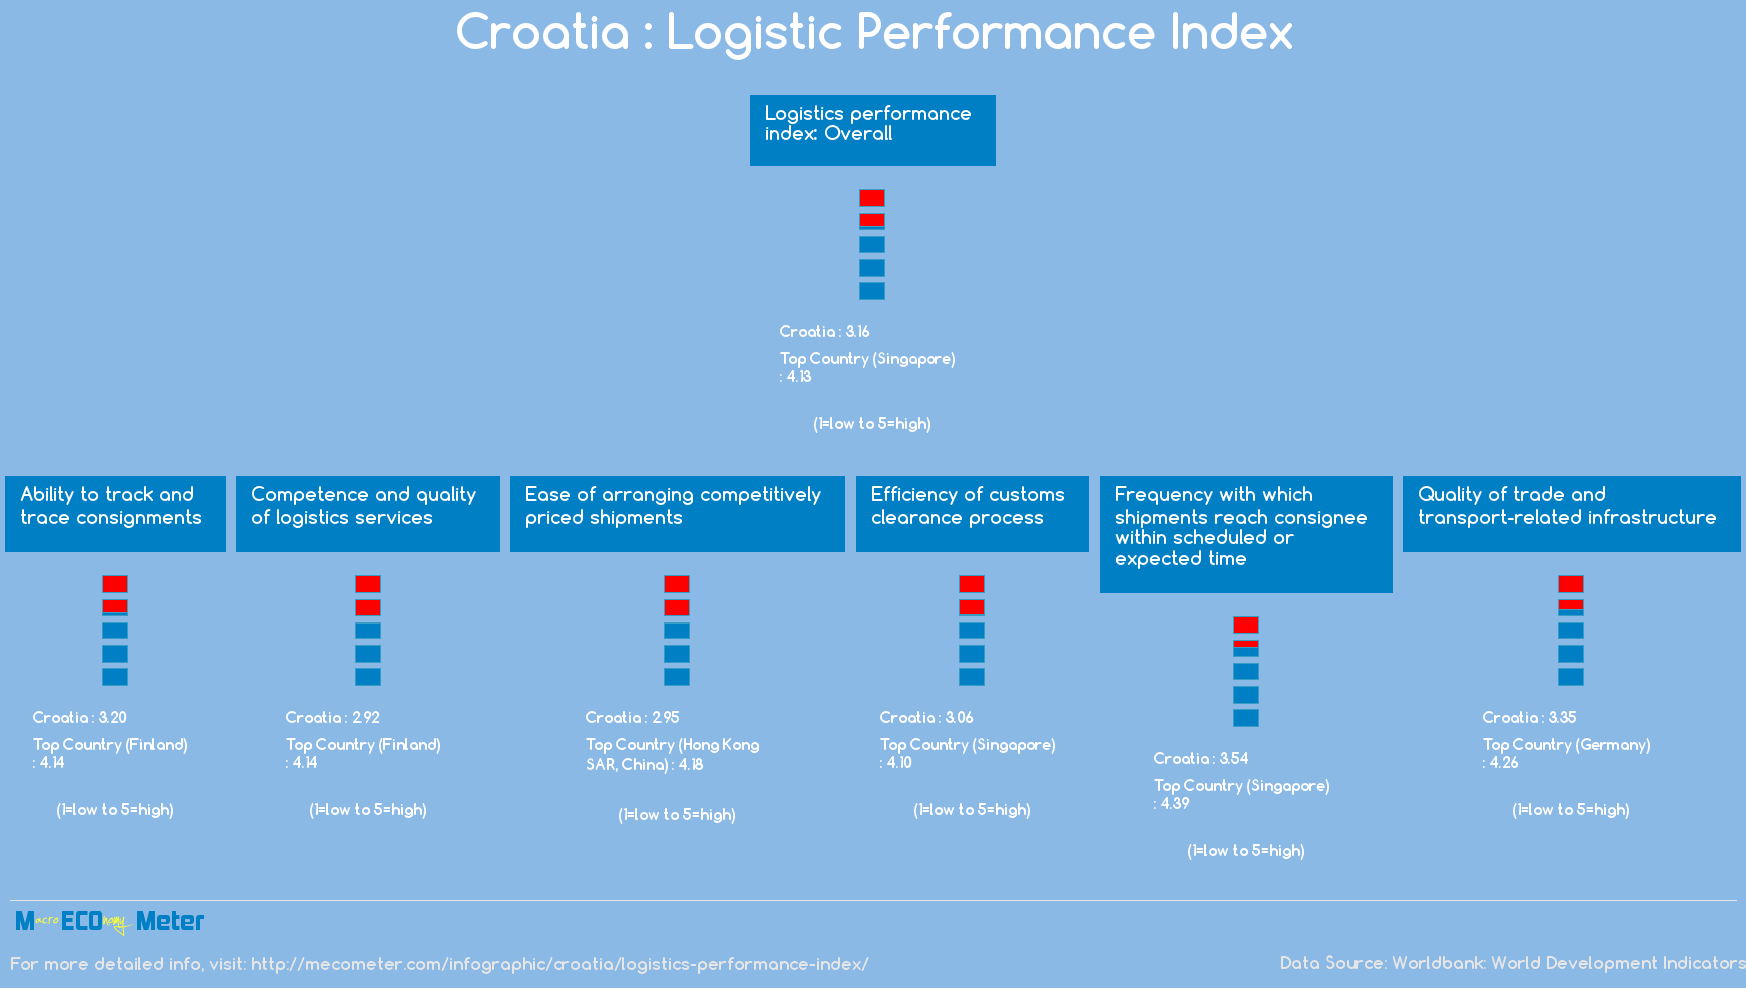 Croatia : Logistic Performance Index